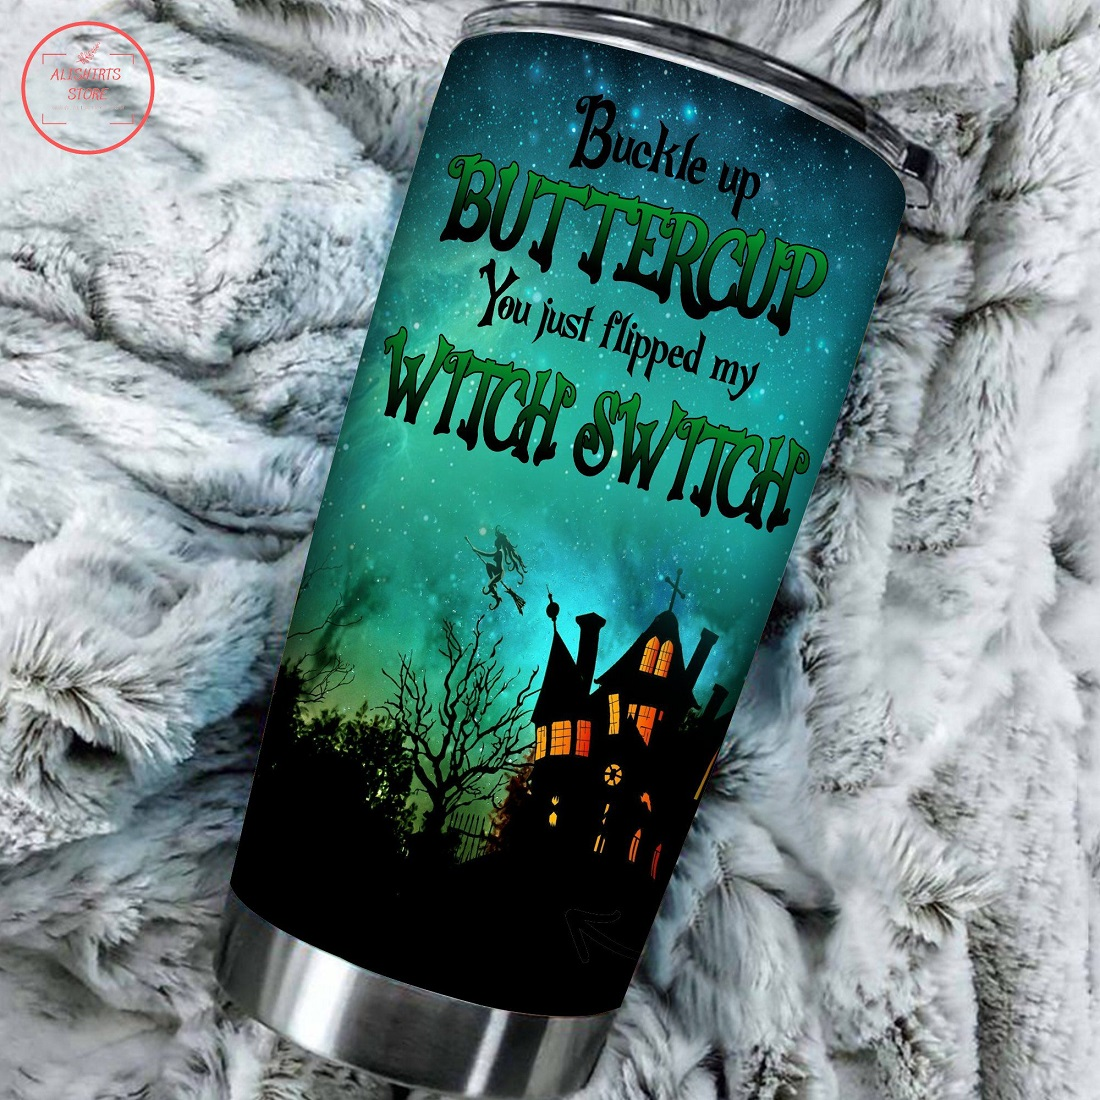 Buckle up buttercup you just flipped my witch switch Tumbler